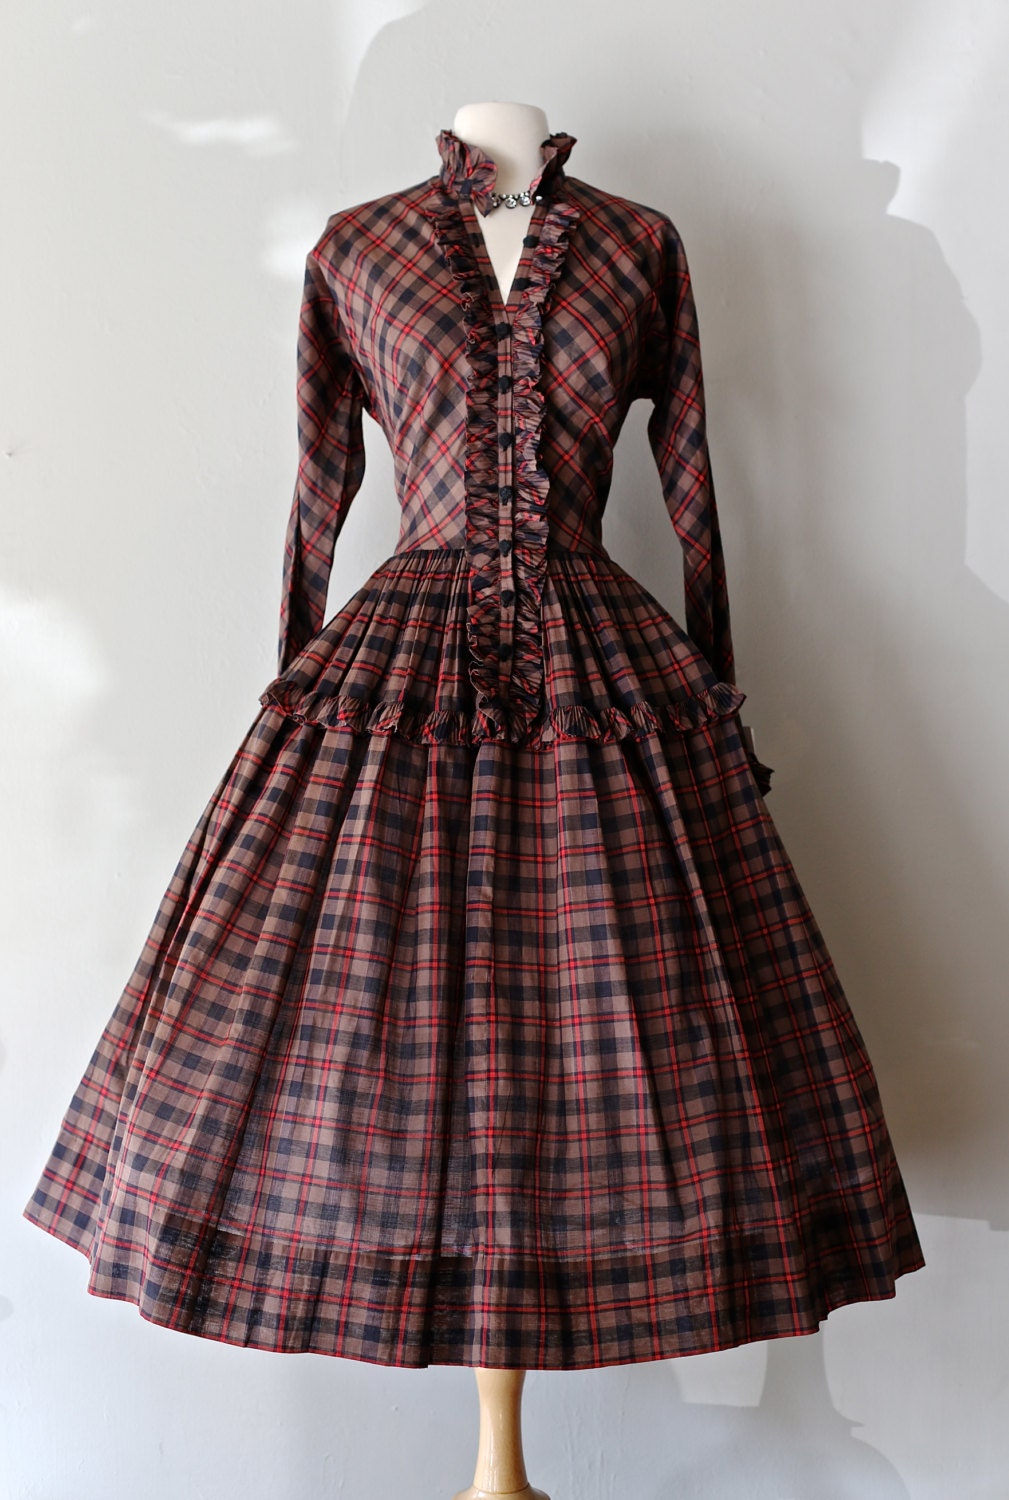 Rare 1950s Claire Mccardell Dress Vintage 50s Plaid Dress